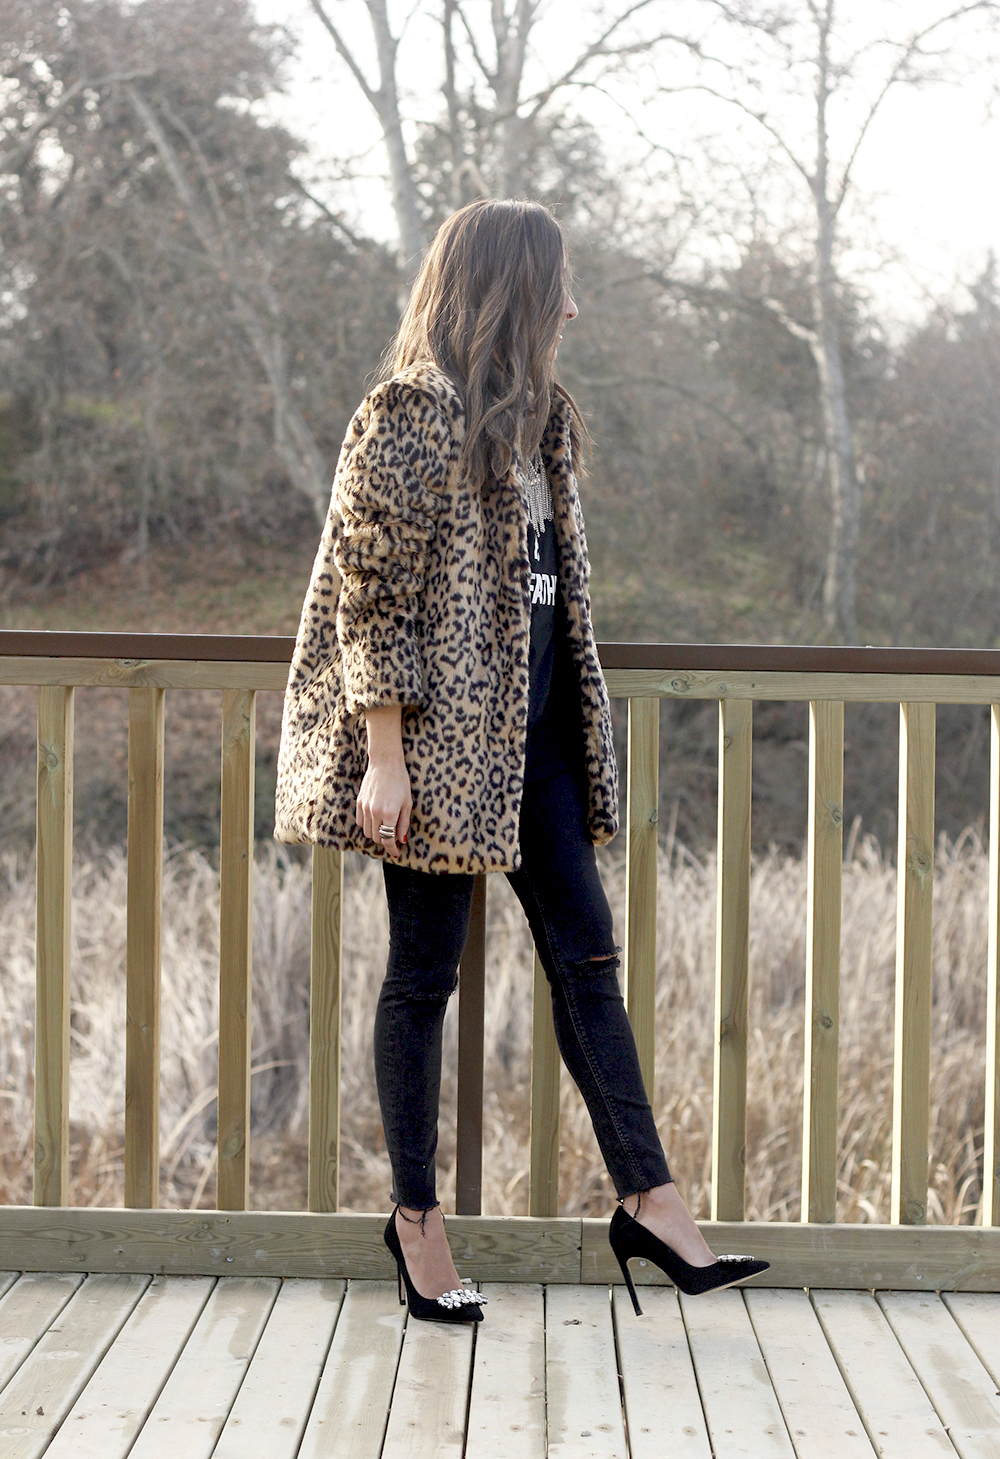 leopard coat black jeans jewel heels outfit style new year fashion04